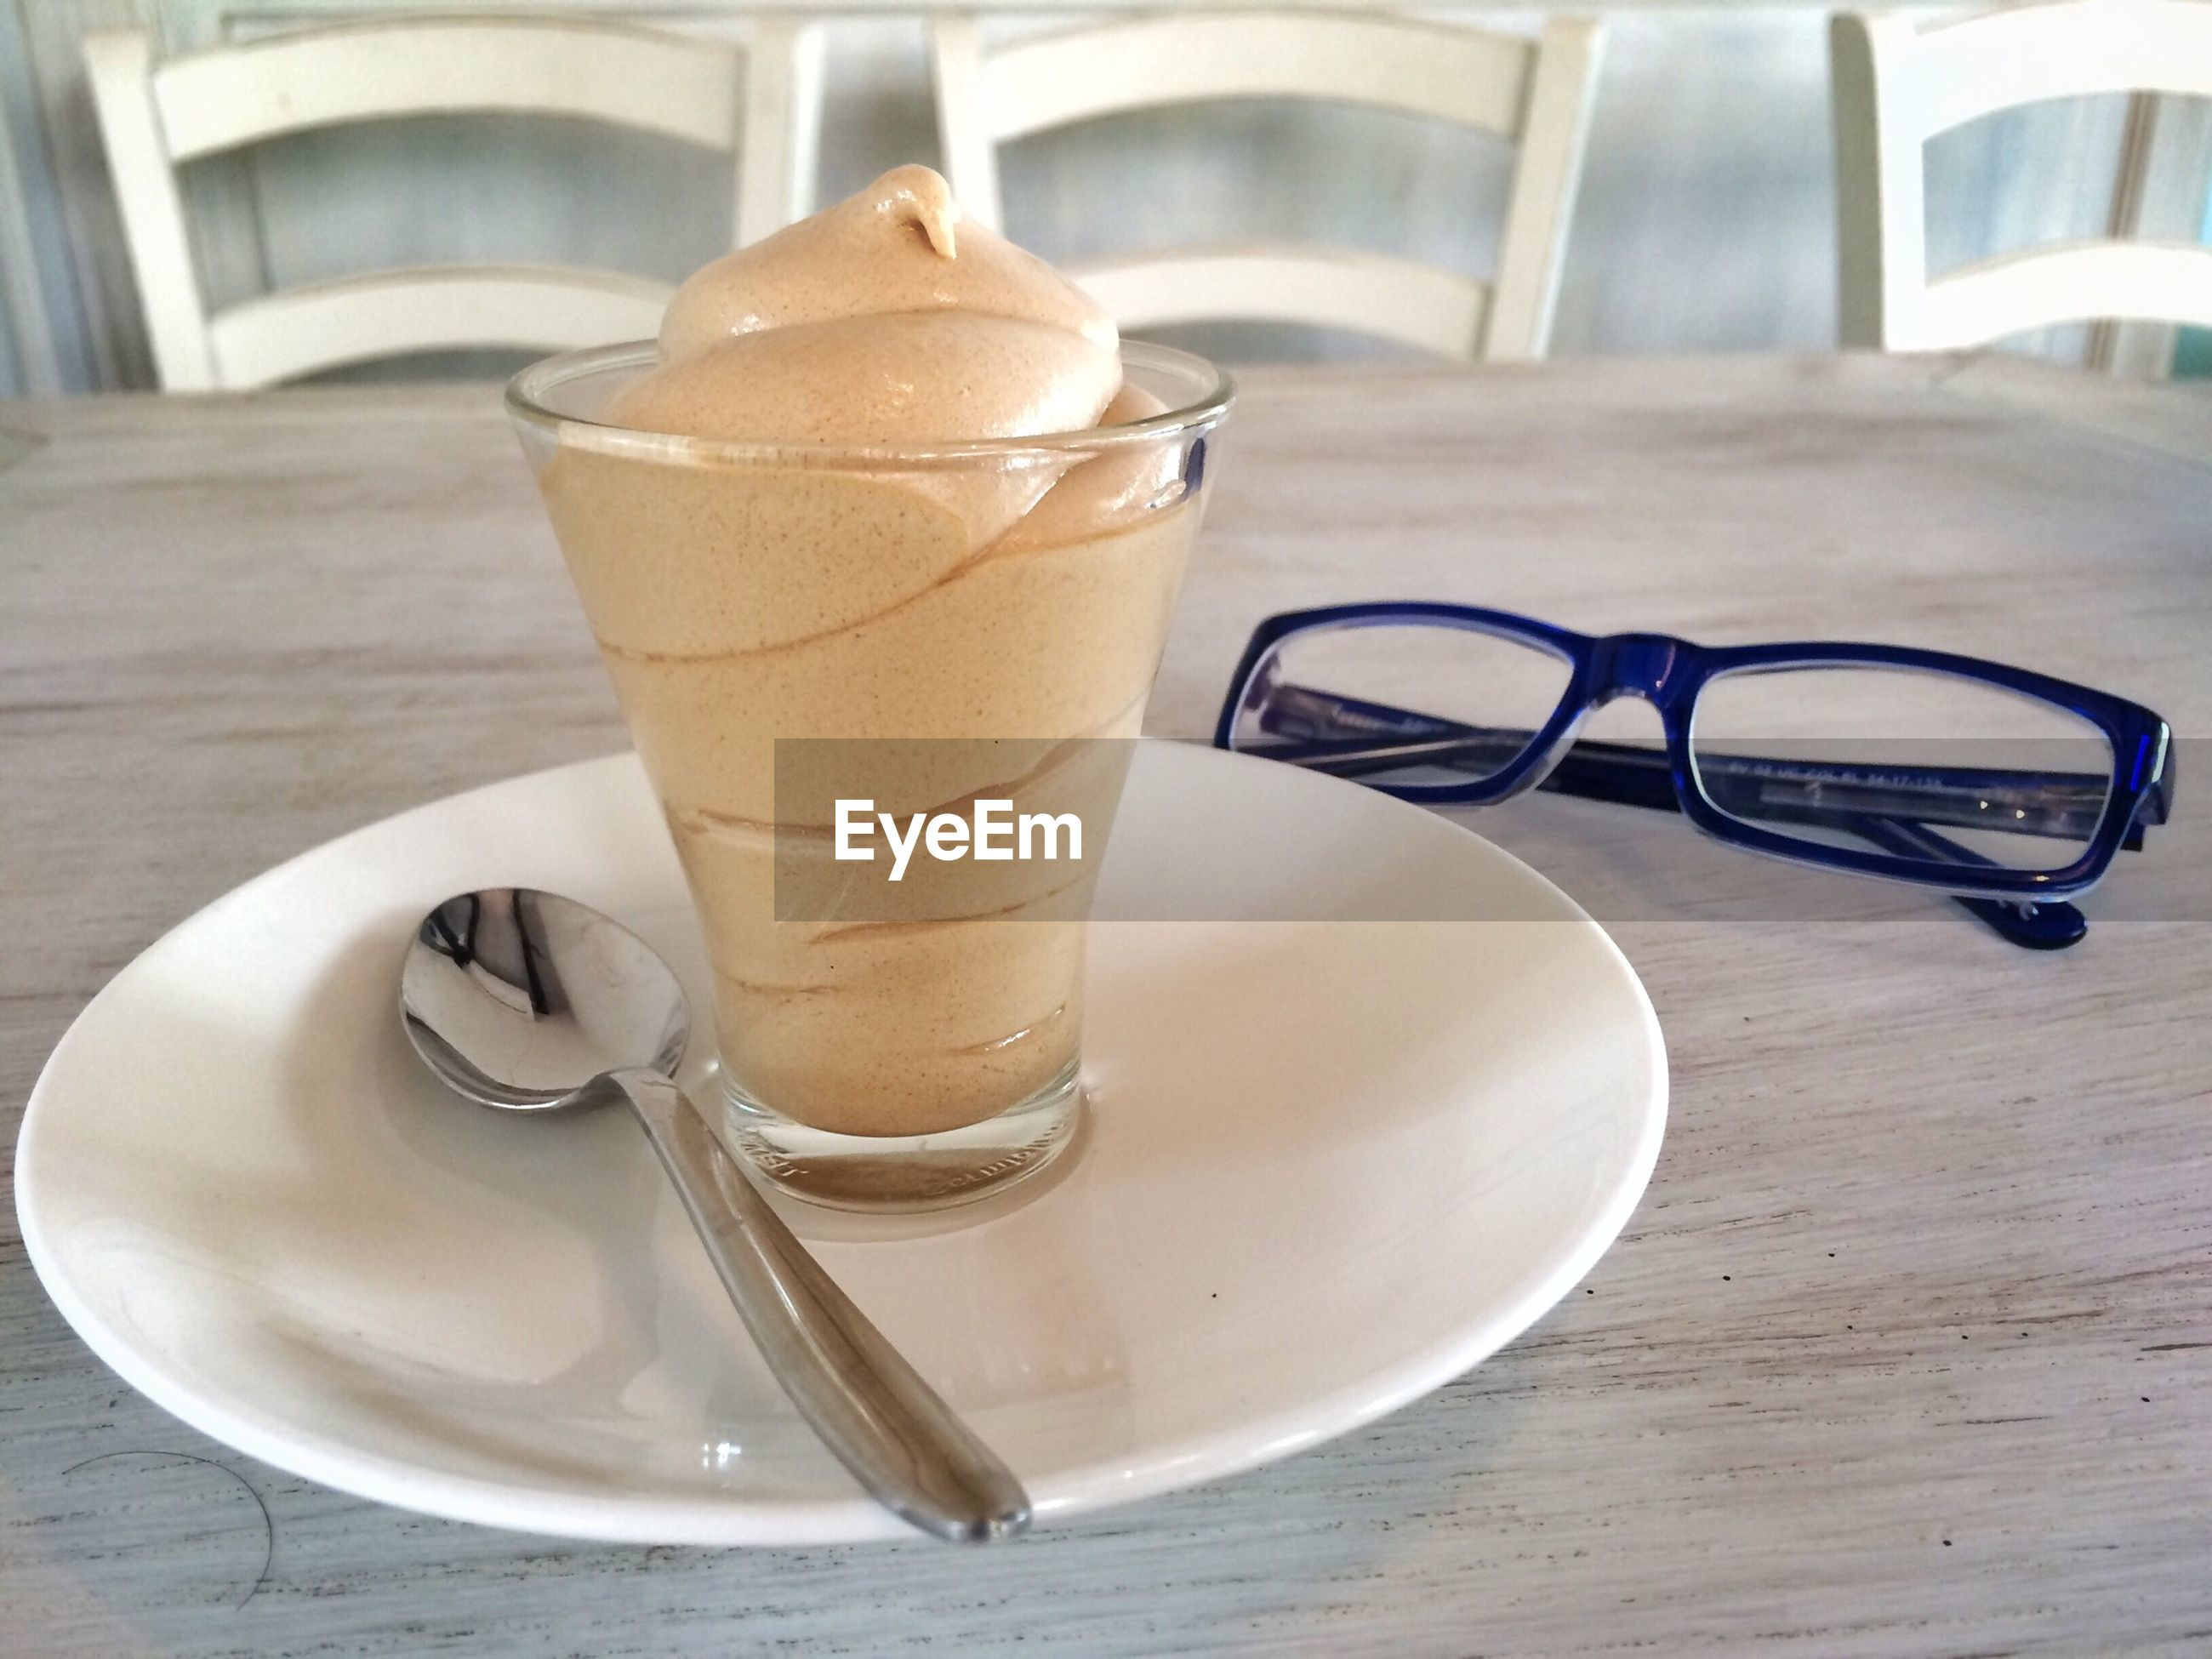 Close-up of coffee with eyeglass on table in cafe